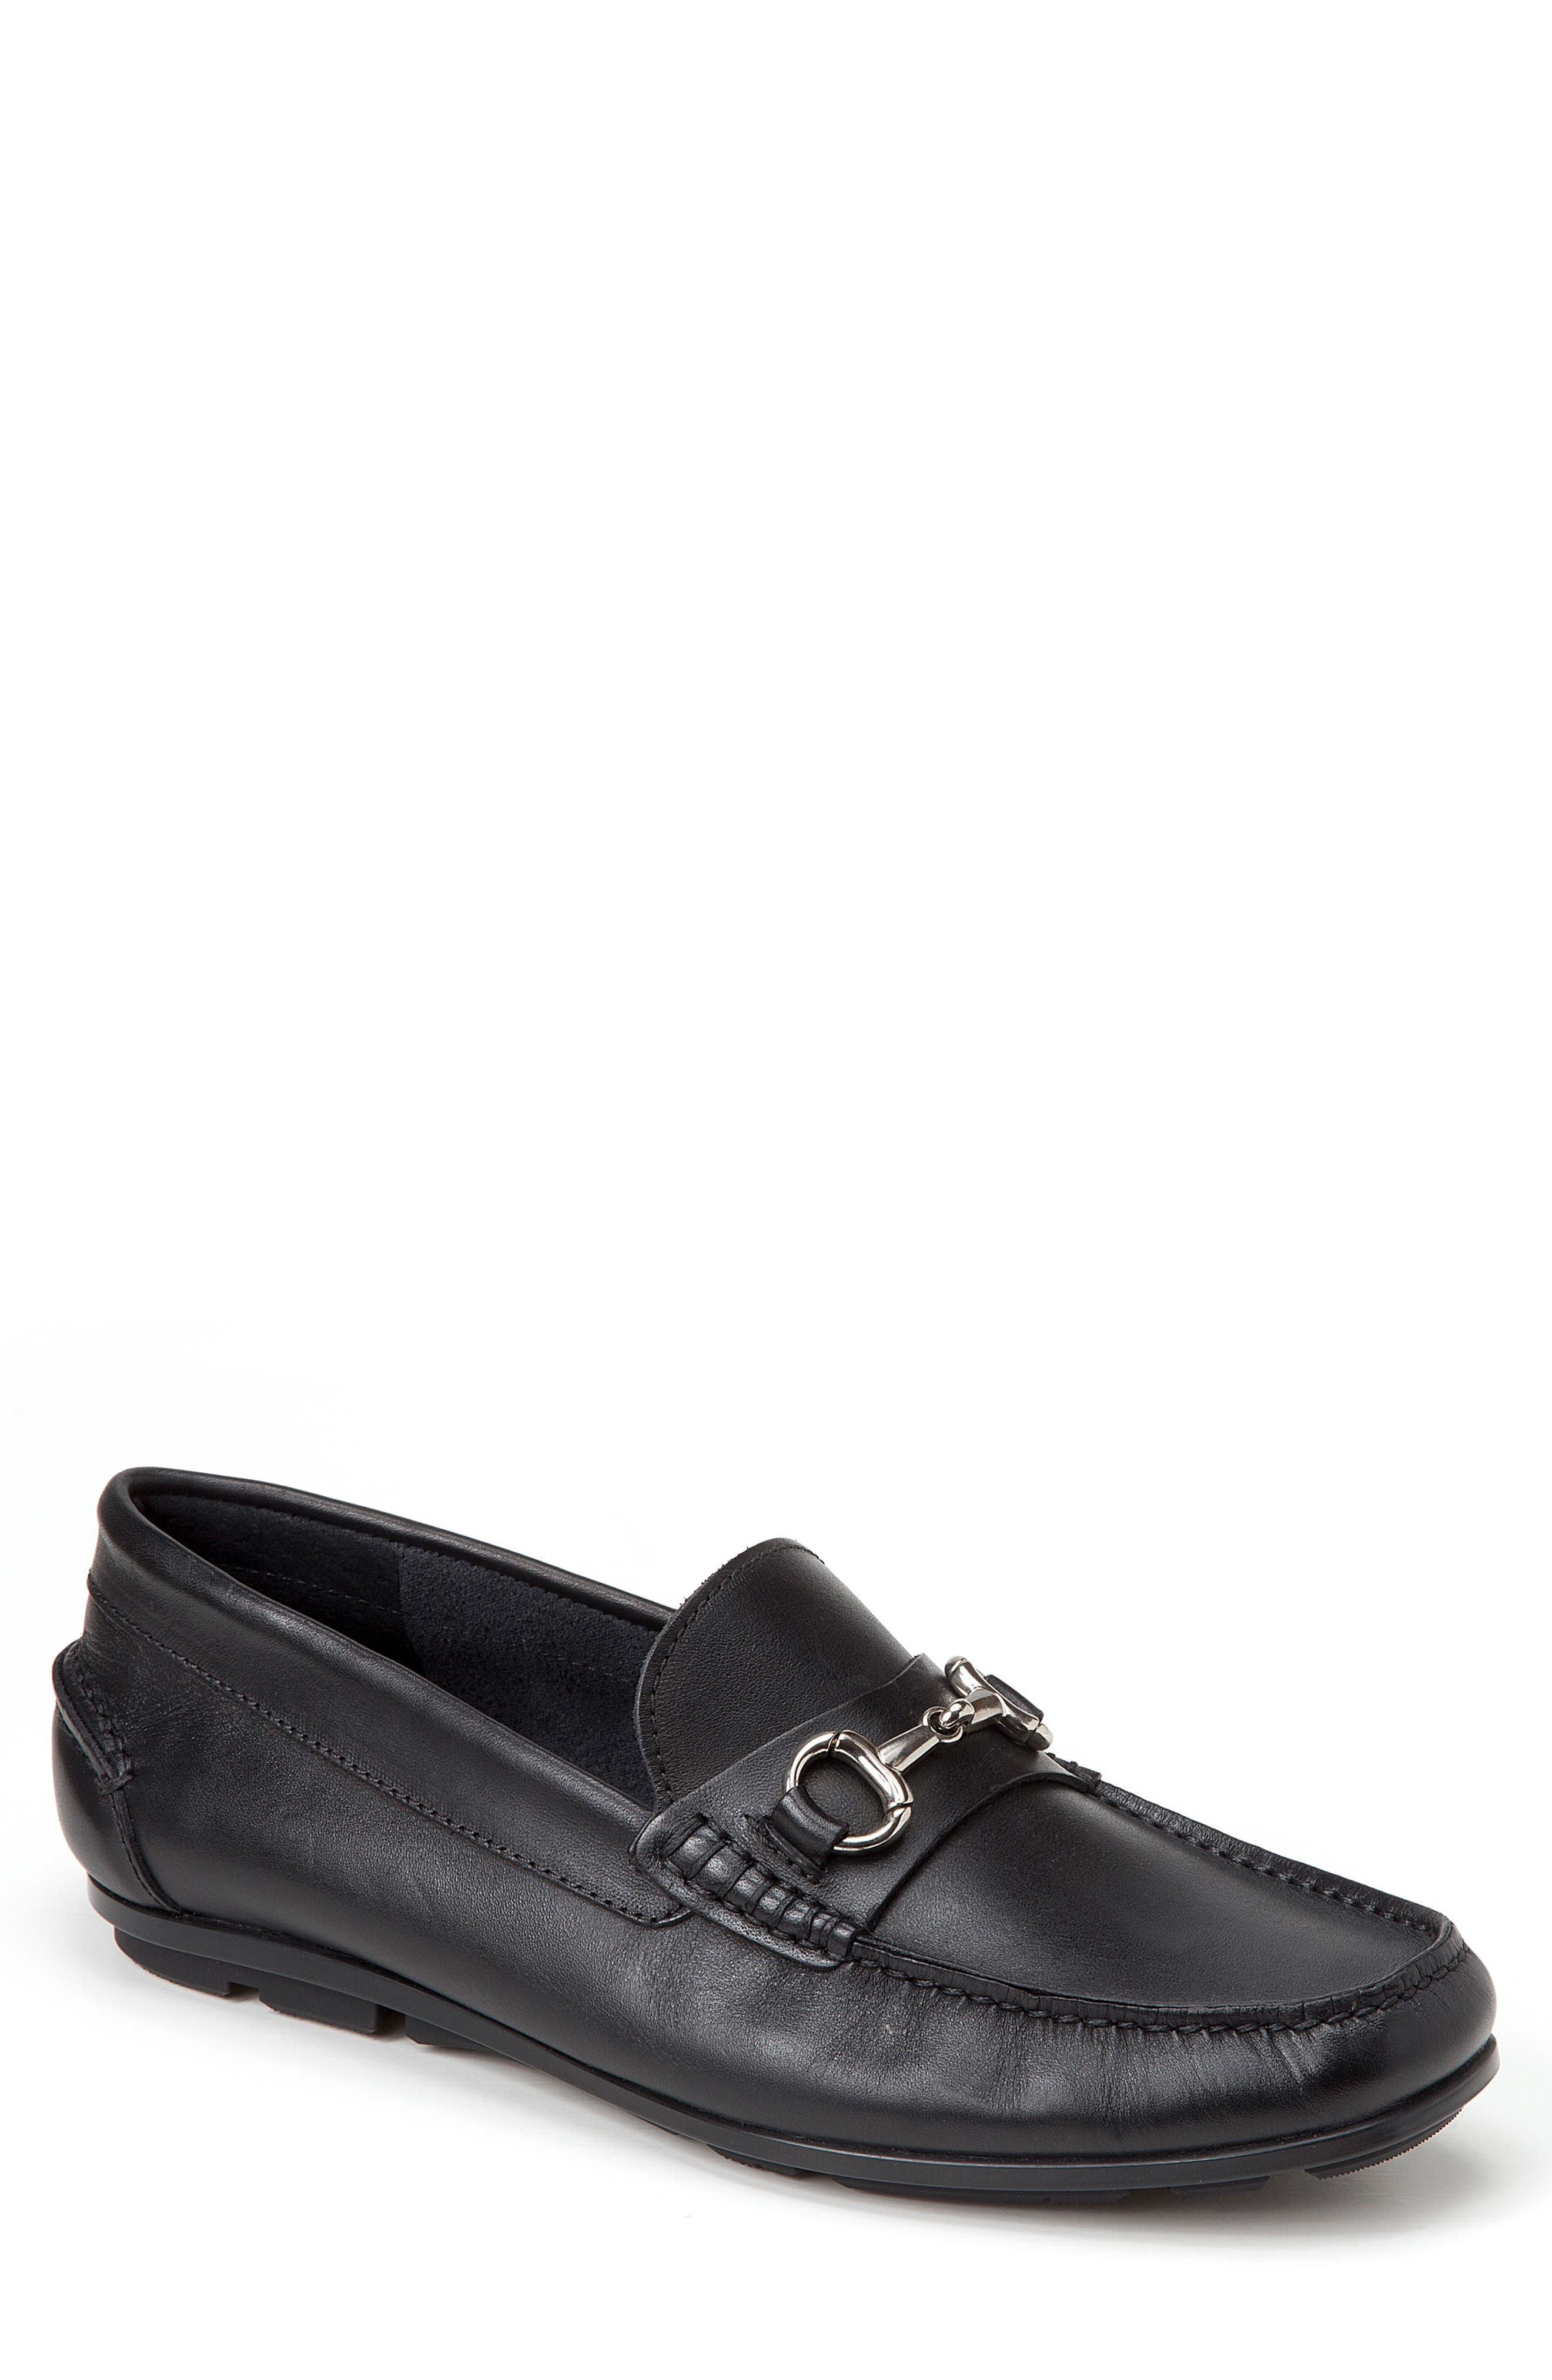 Marco Moc Toe Loafer,                             Main thumbnail 1, color,                             Black Leather